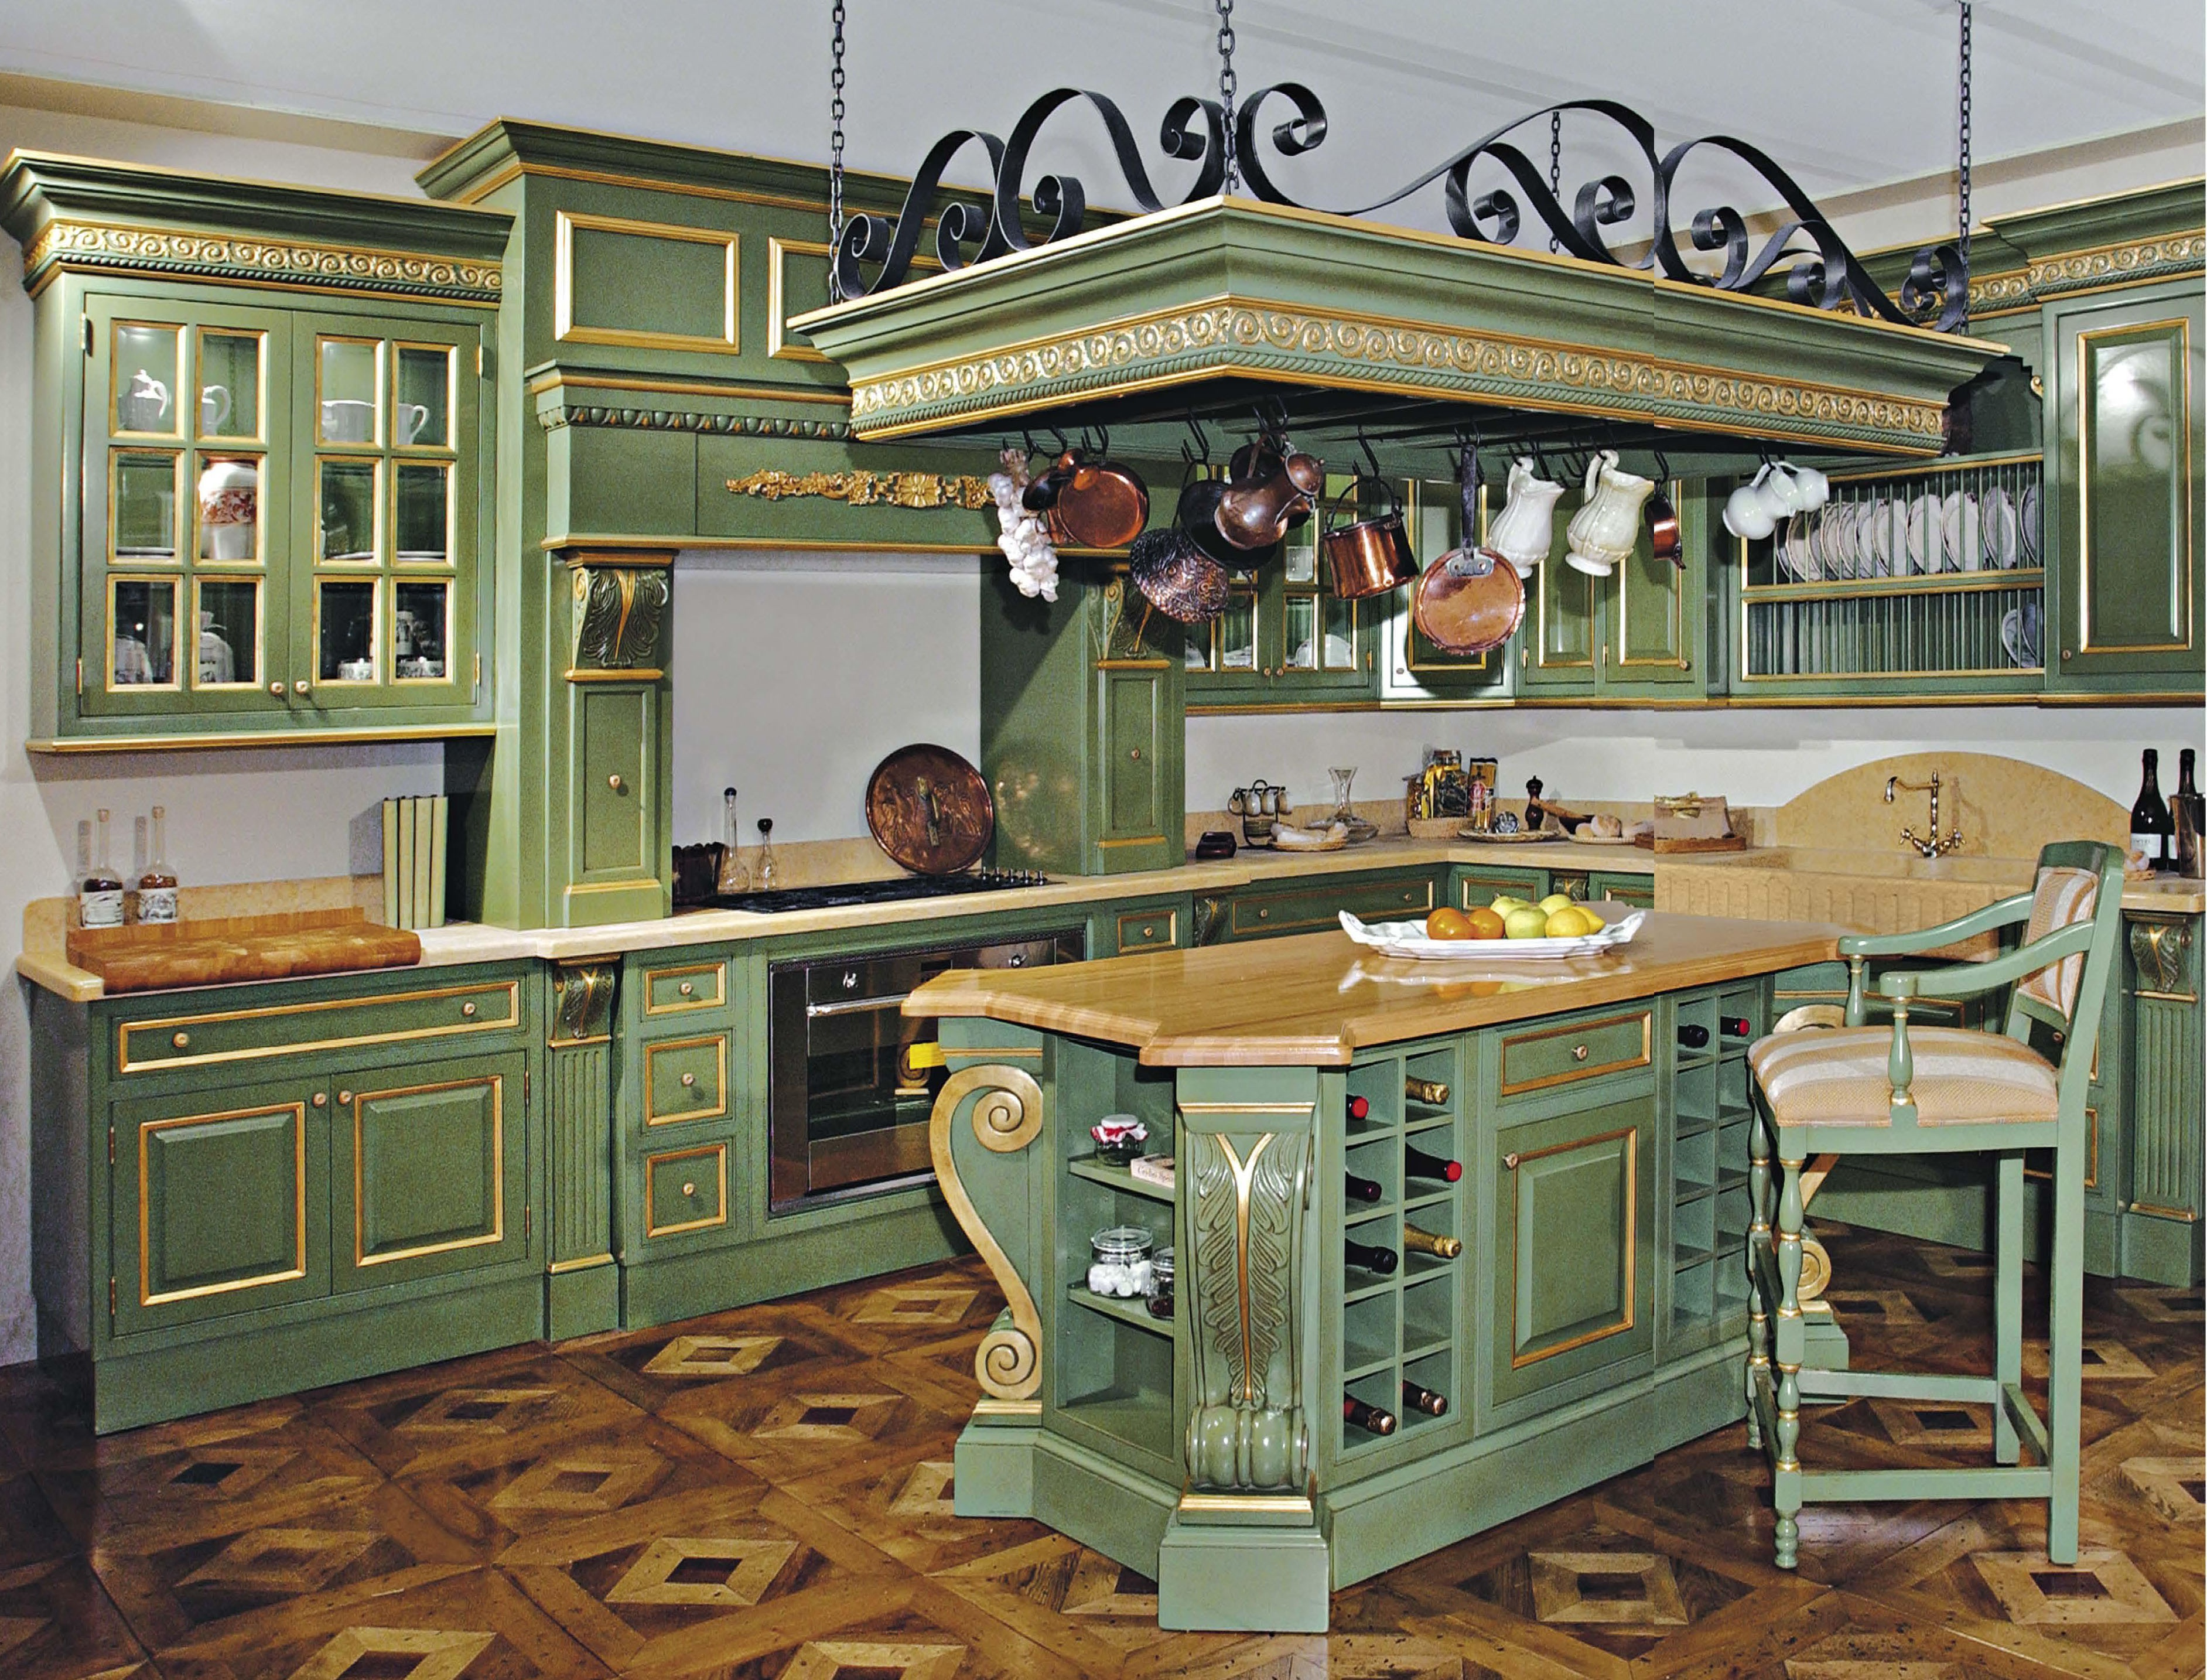 Kitchen kitchen set made of wood with hand carved francesco molon